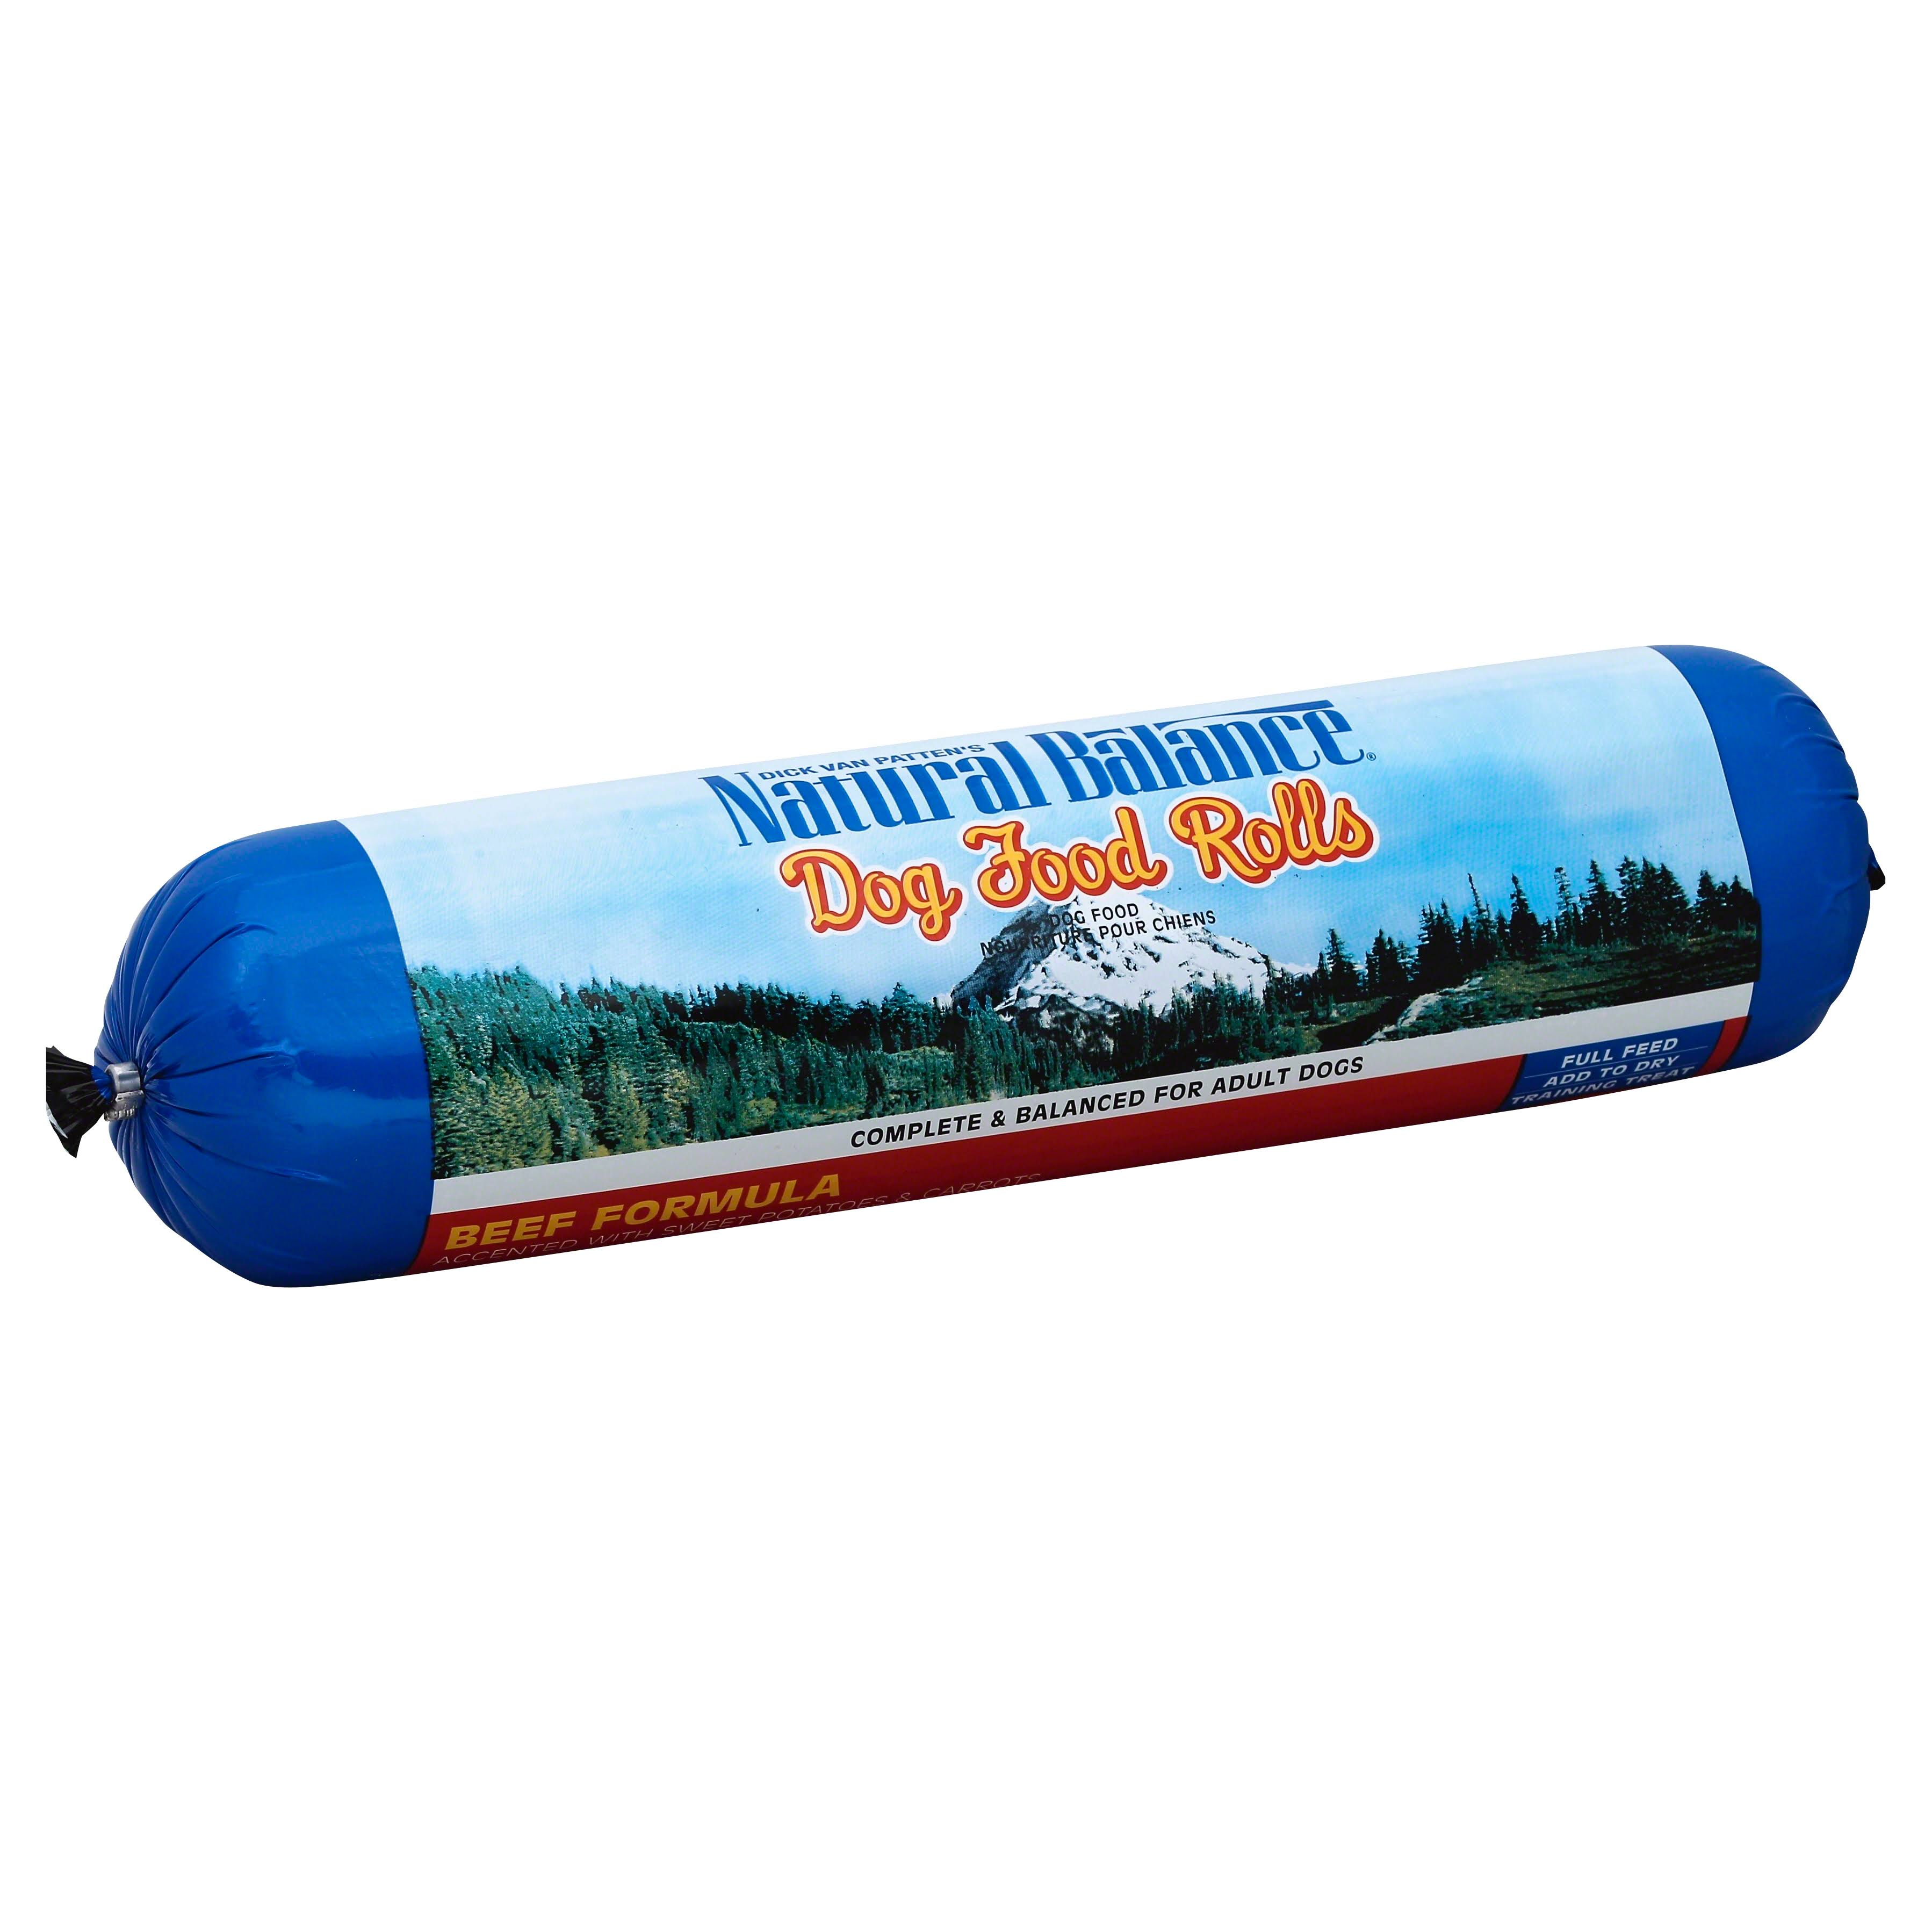 Natural Balance Dog Food Roll - Beef